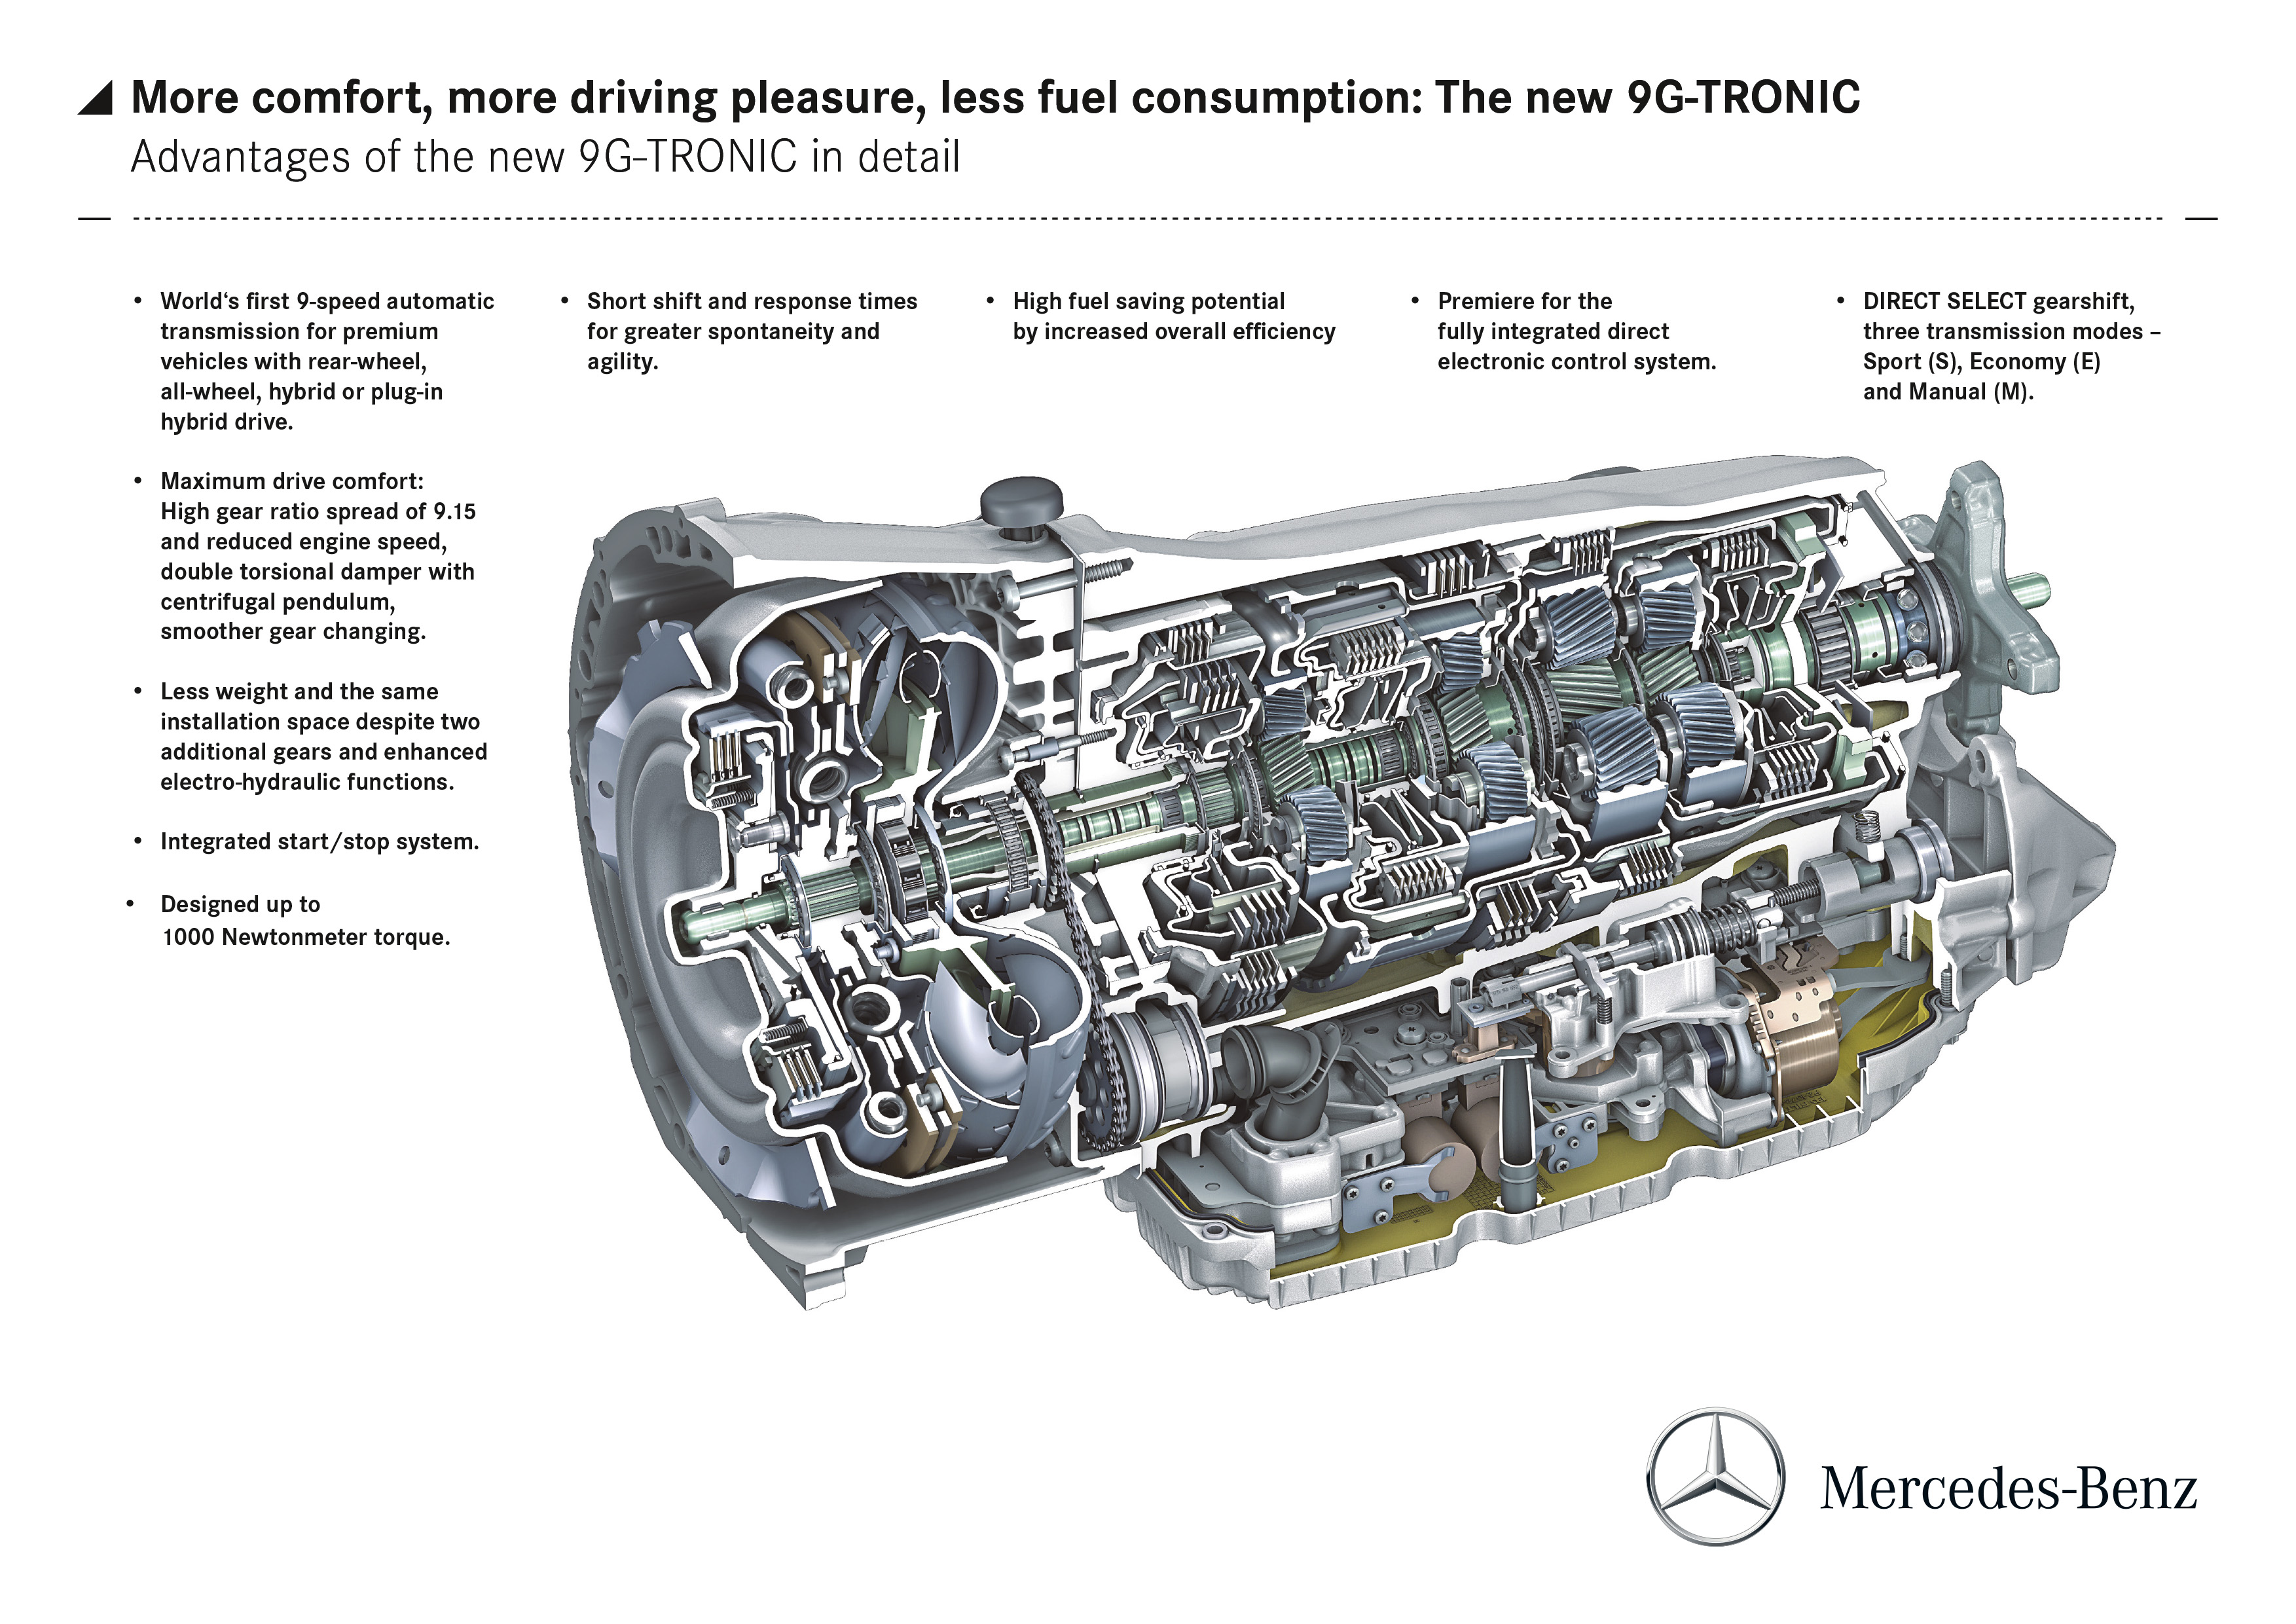 image htm wallpaper picture benz transmission mercedes technical of amg